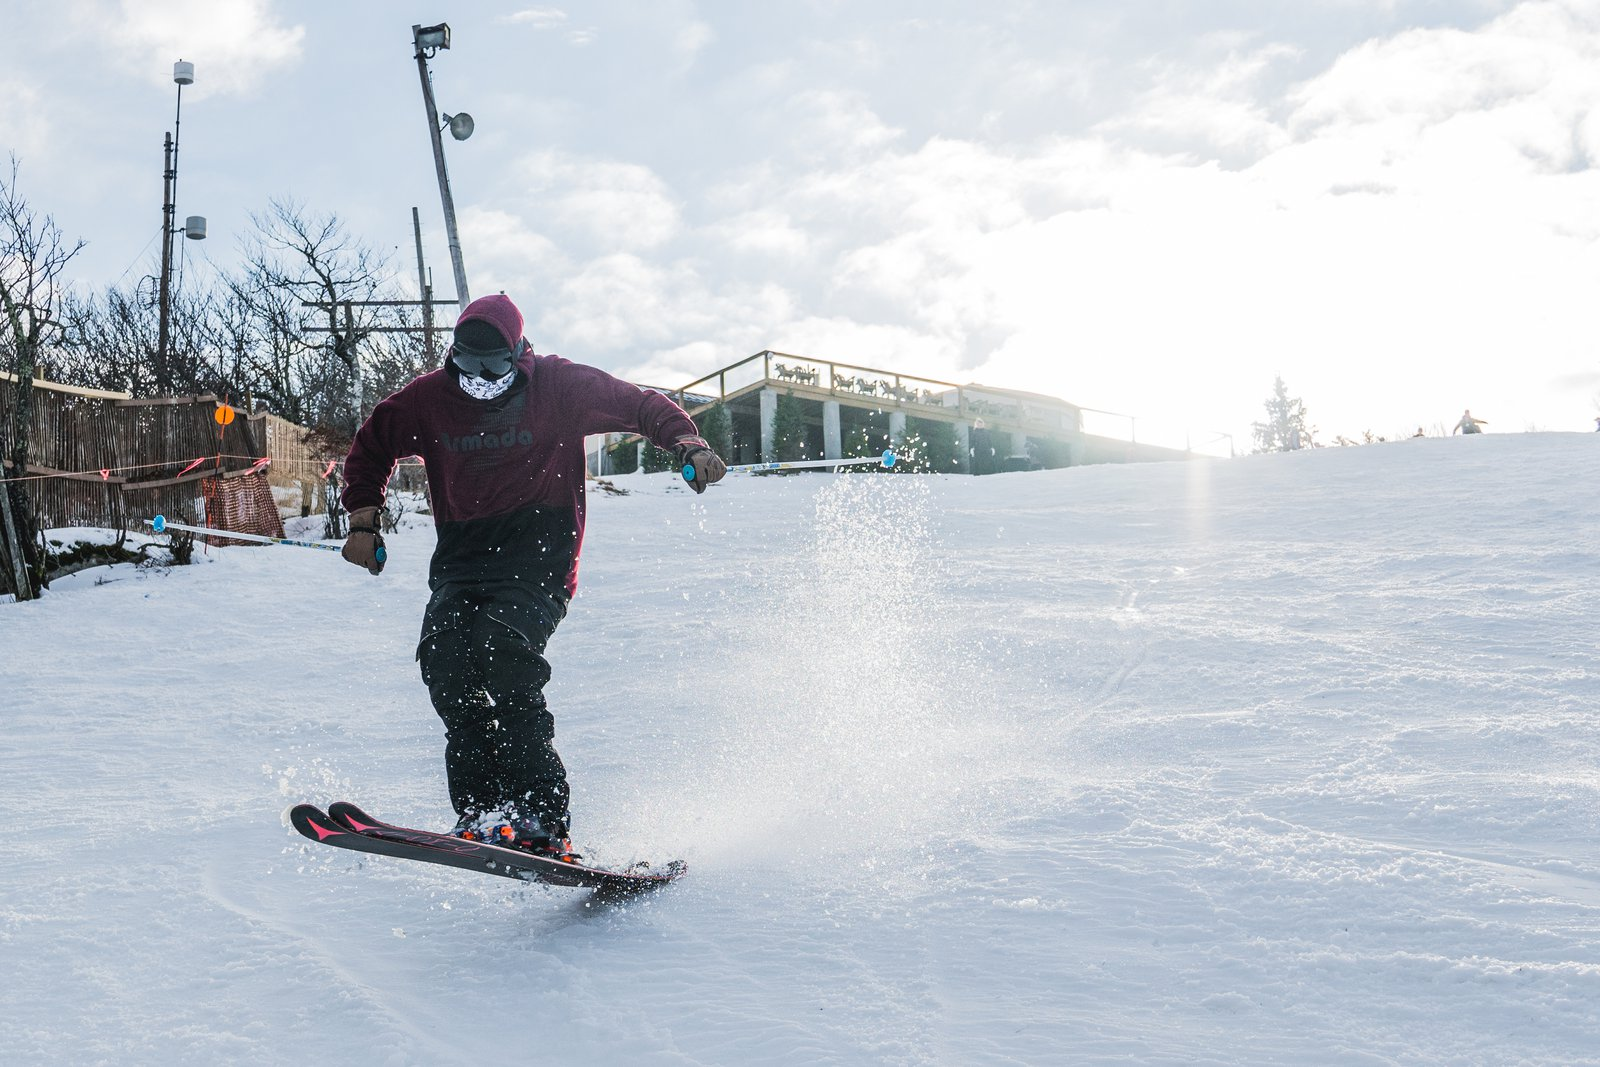 Opening day, Beech mtn NC